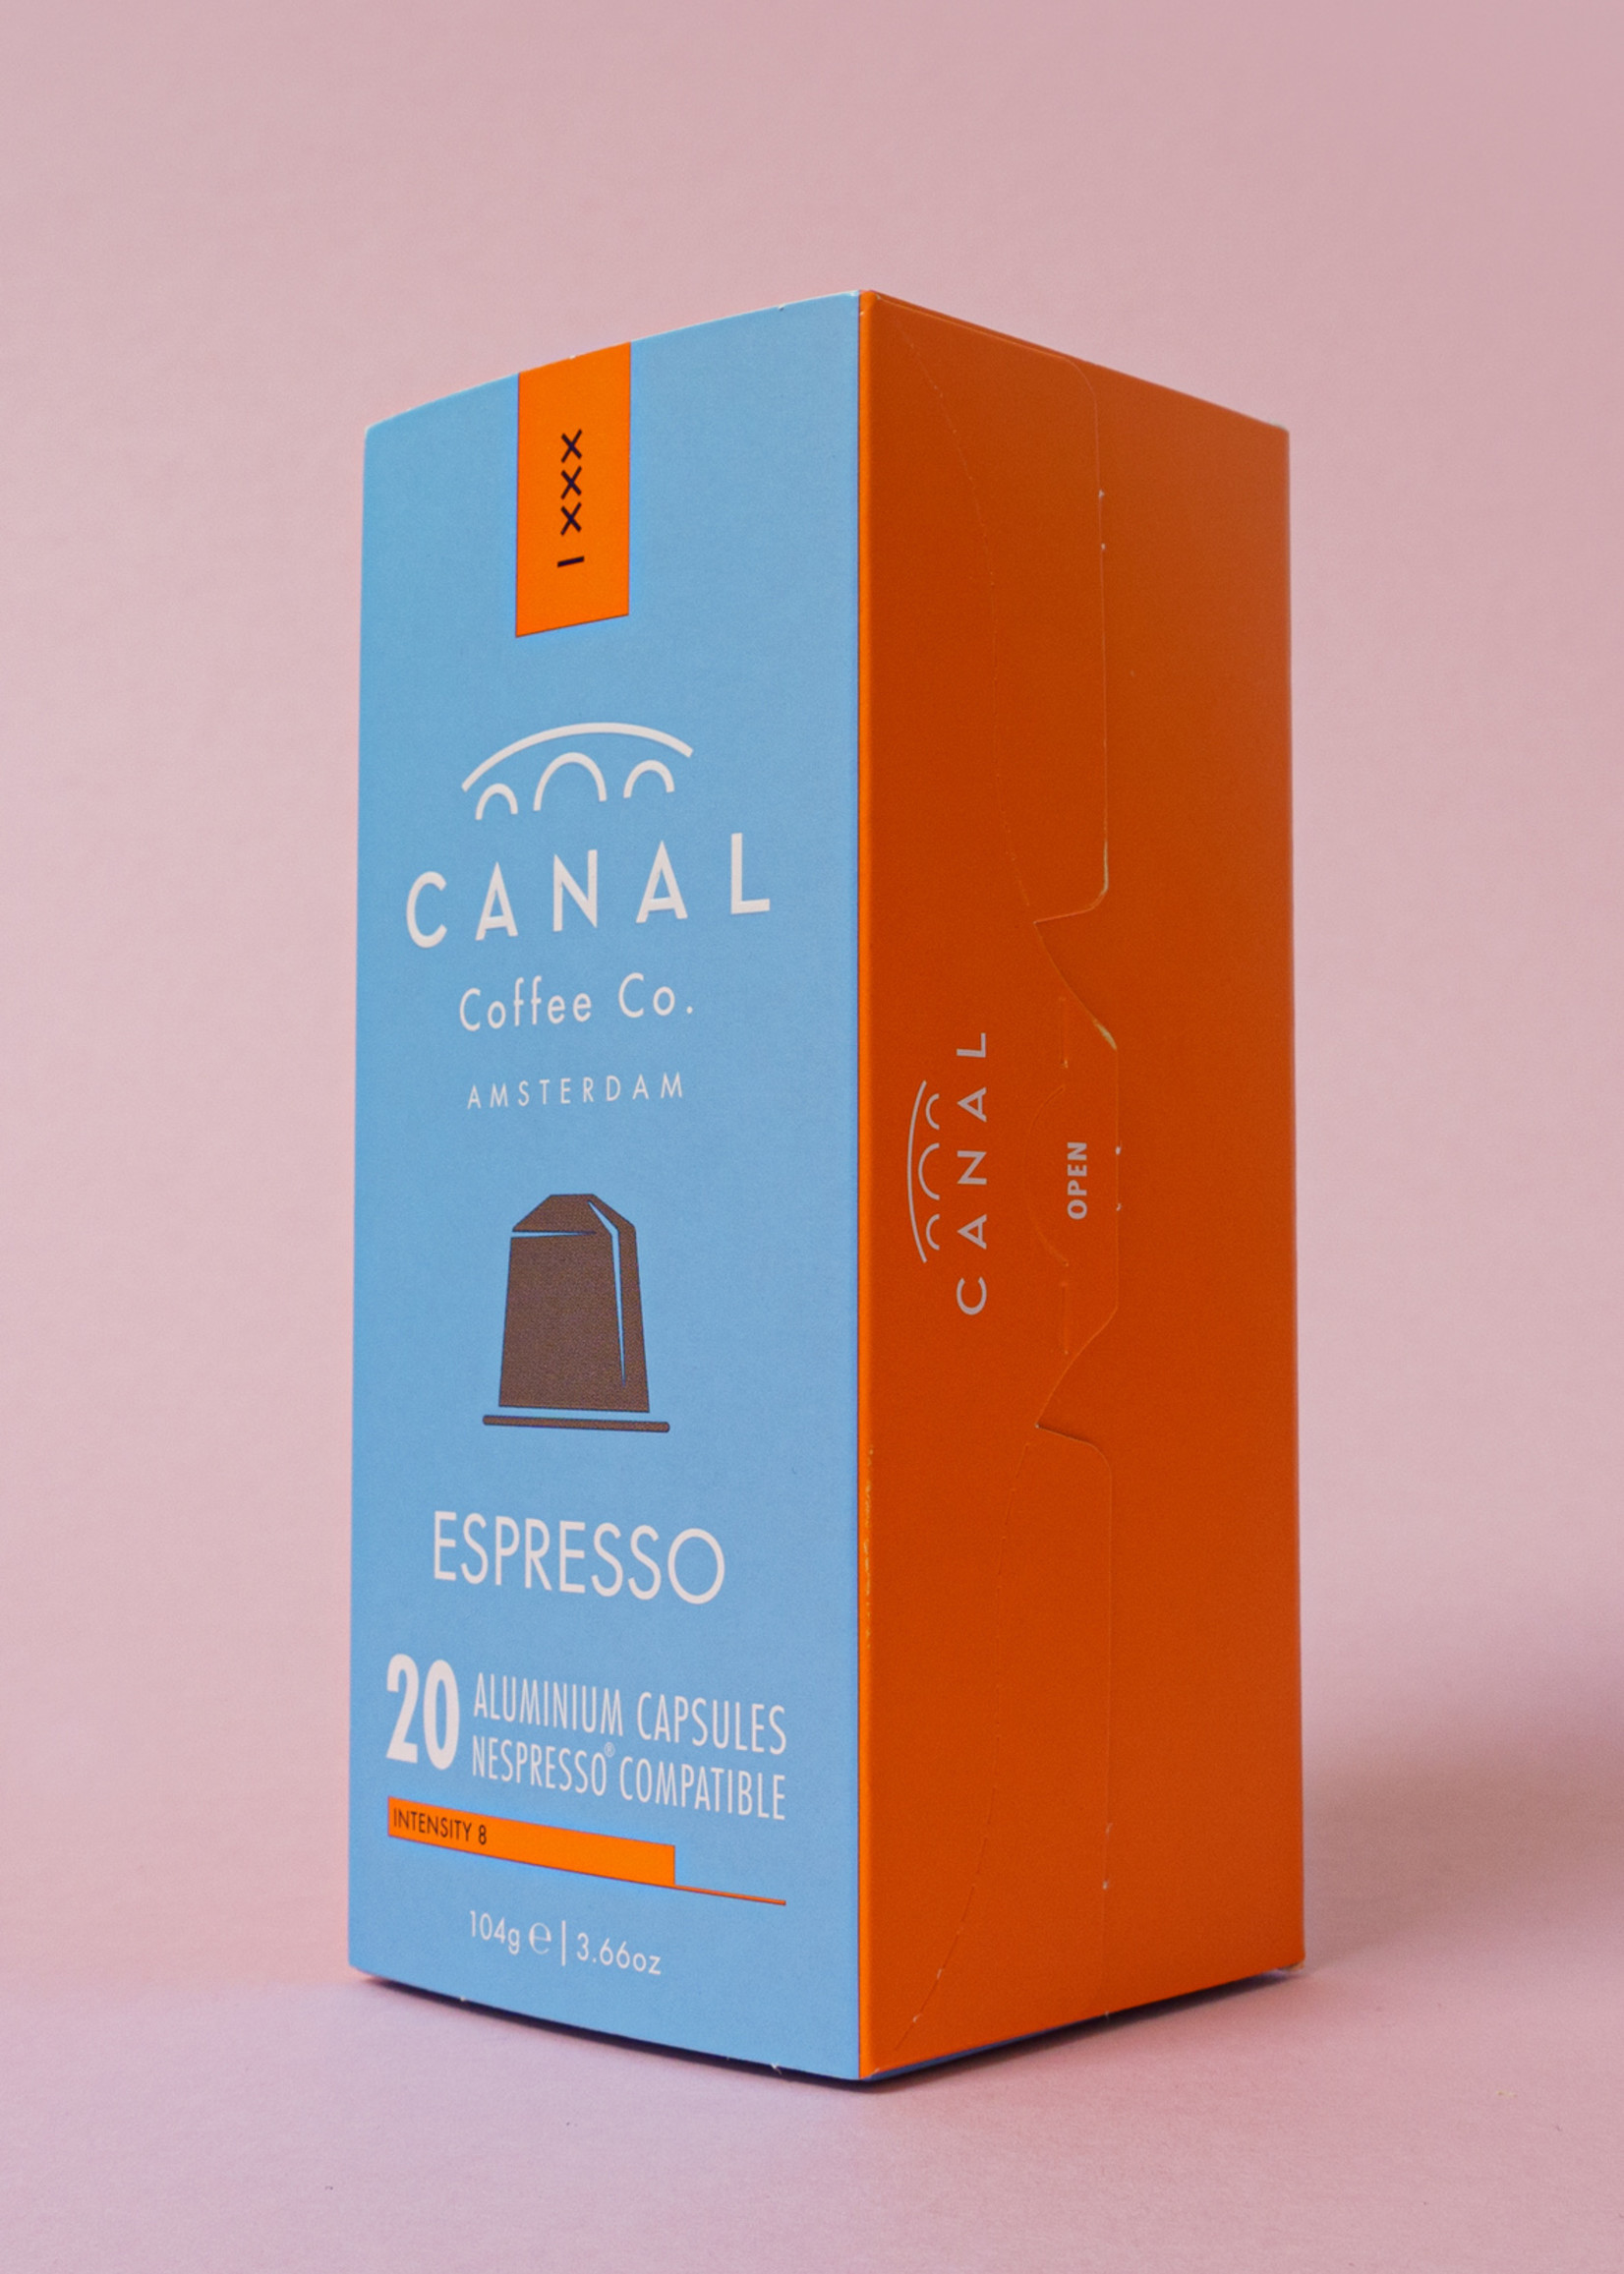 Canal Coffee & Co Organic and fairtrade Canal Espresso capsules